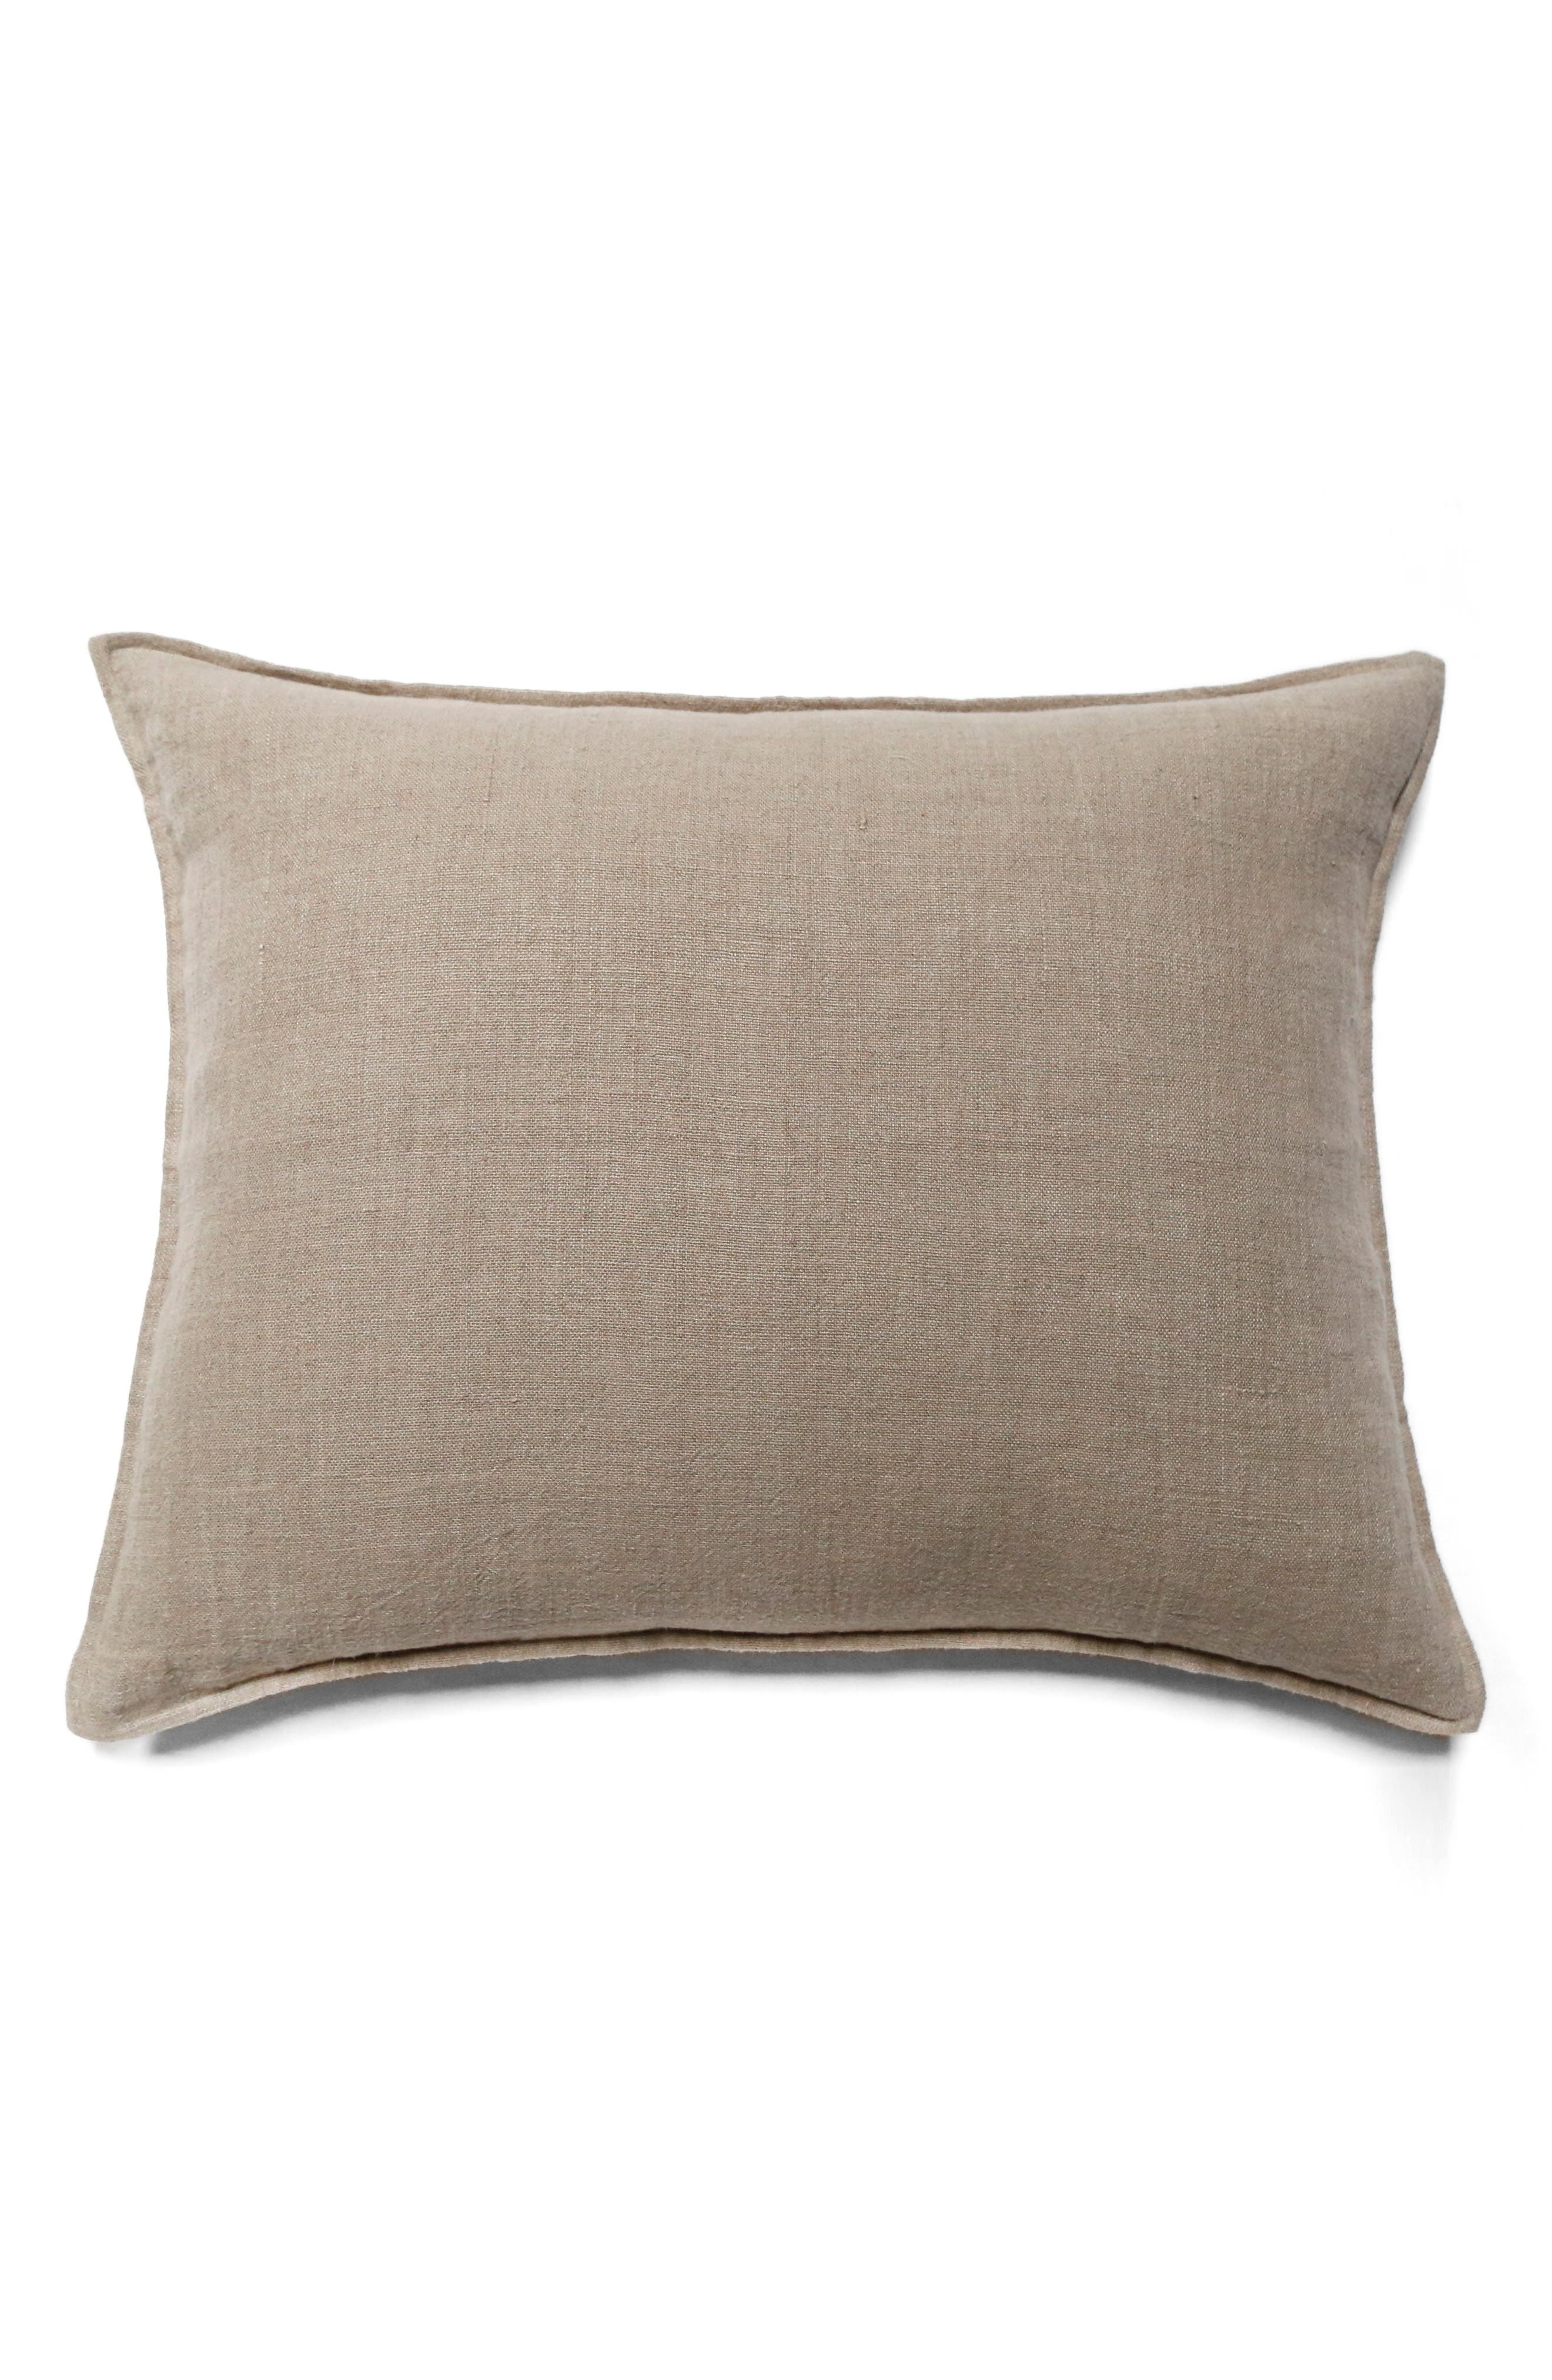 Alternate Image 1 Selected - Pom Pom at Home Montauk Big Accent Pillow